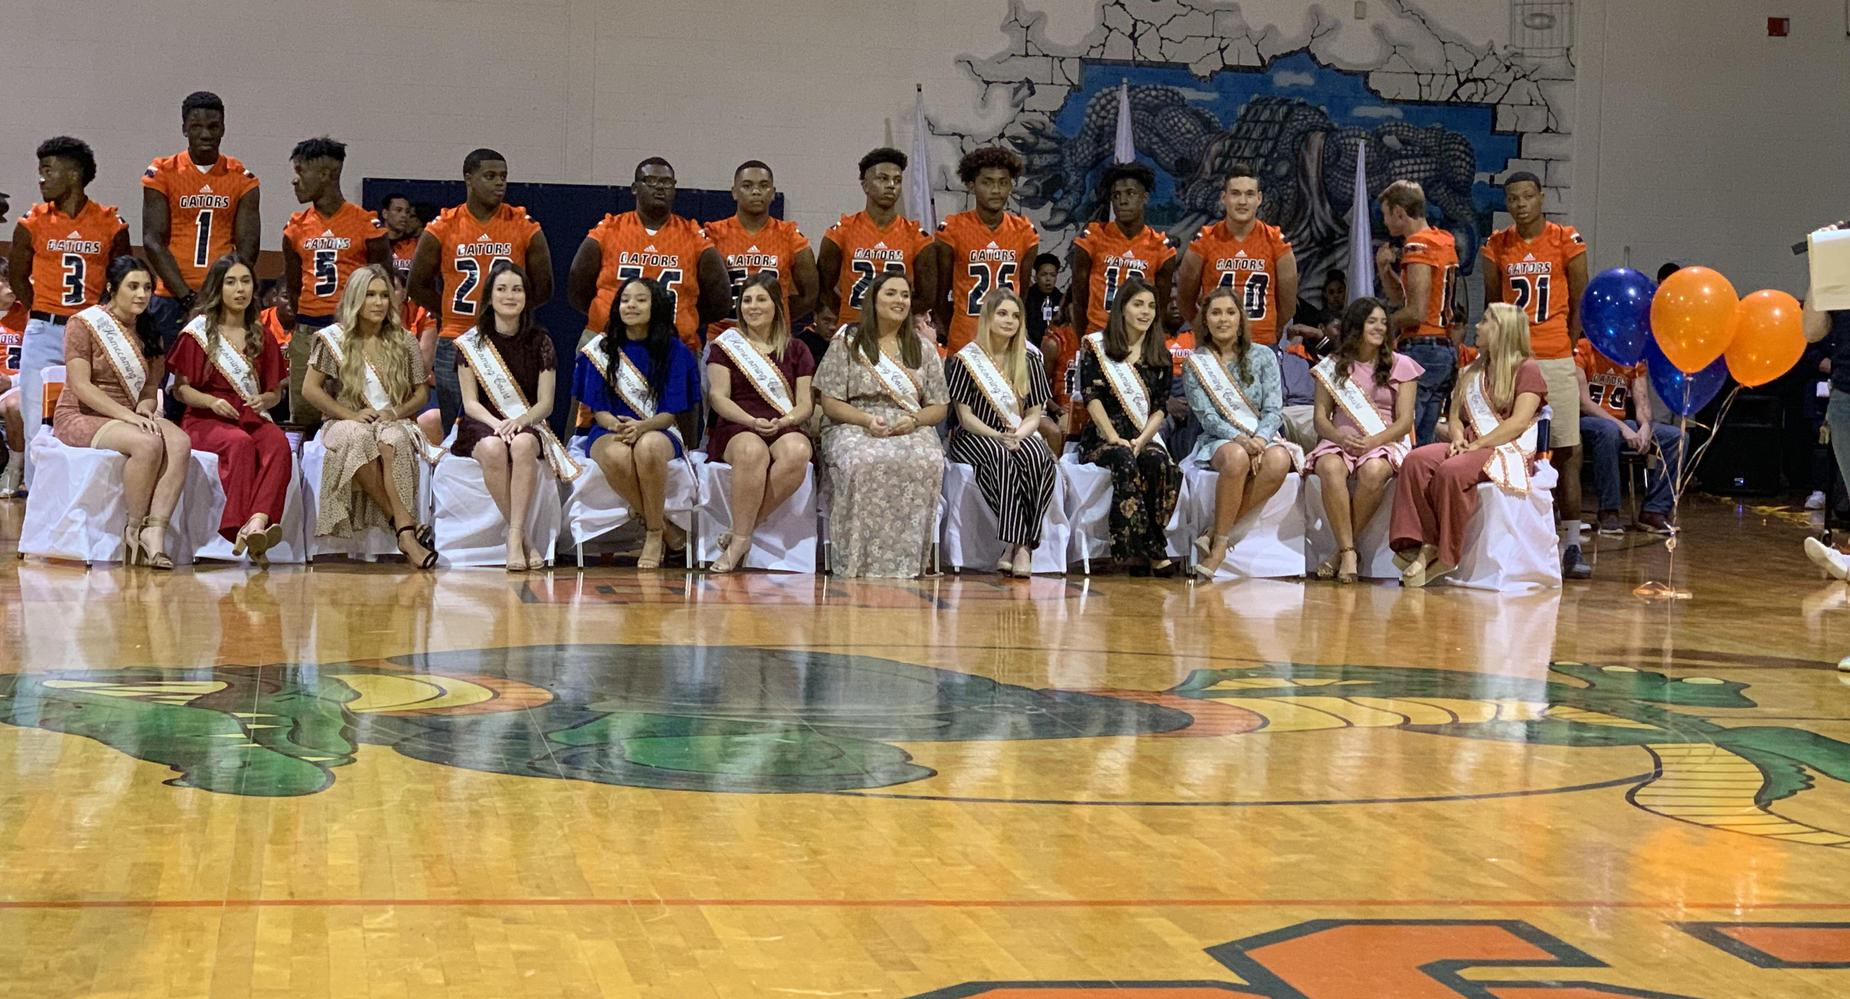 Homecoming Court escorted by Football Players at the Pep Rally